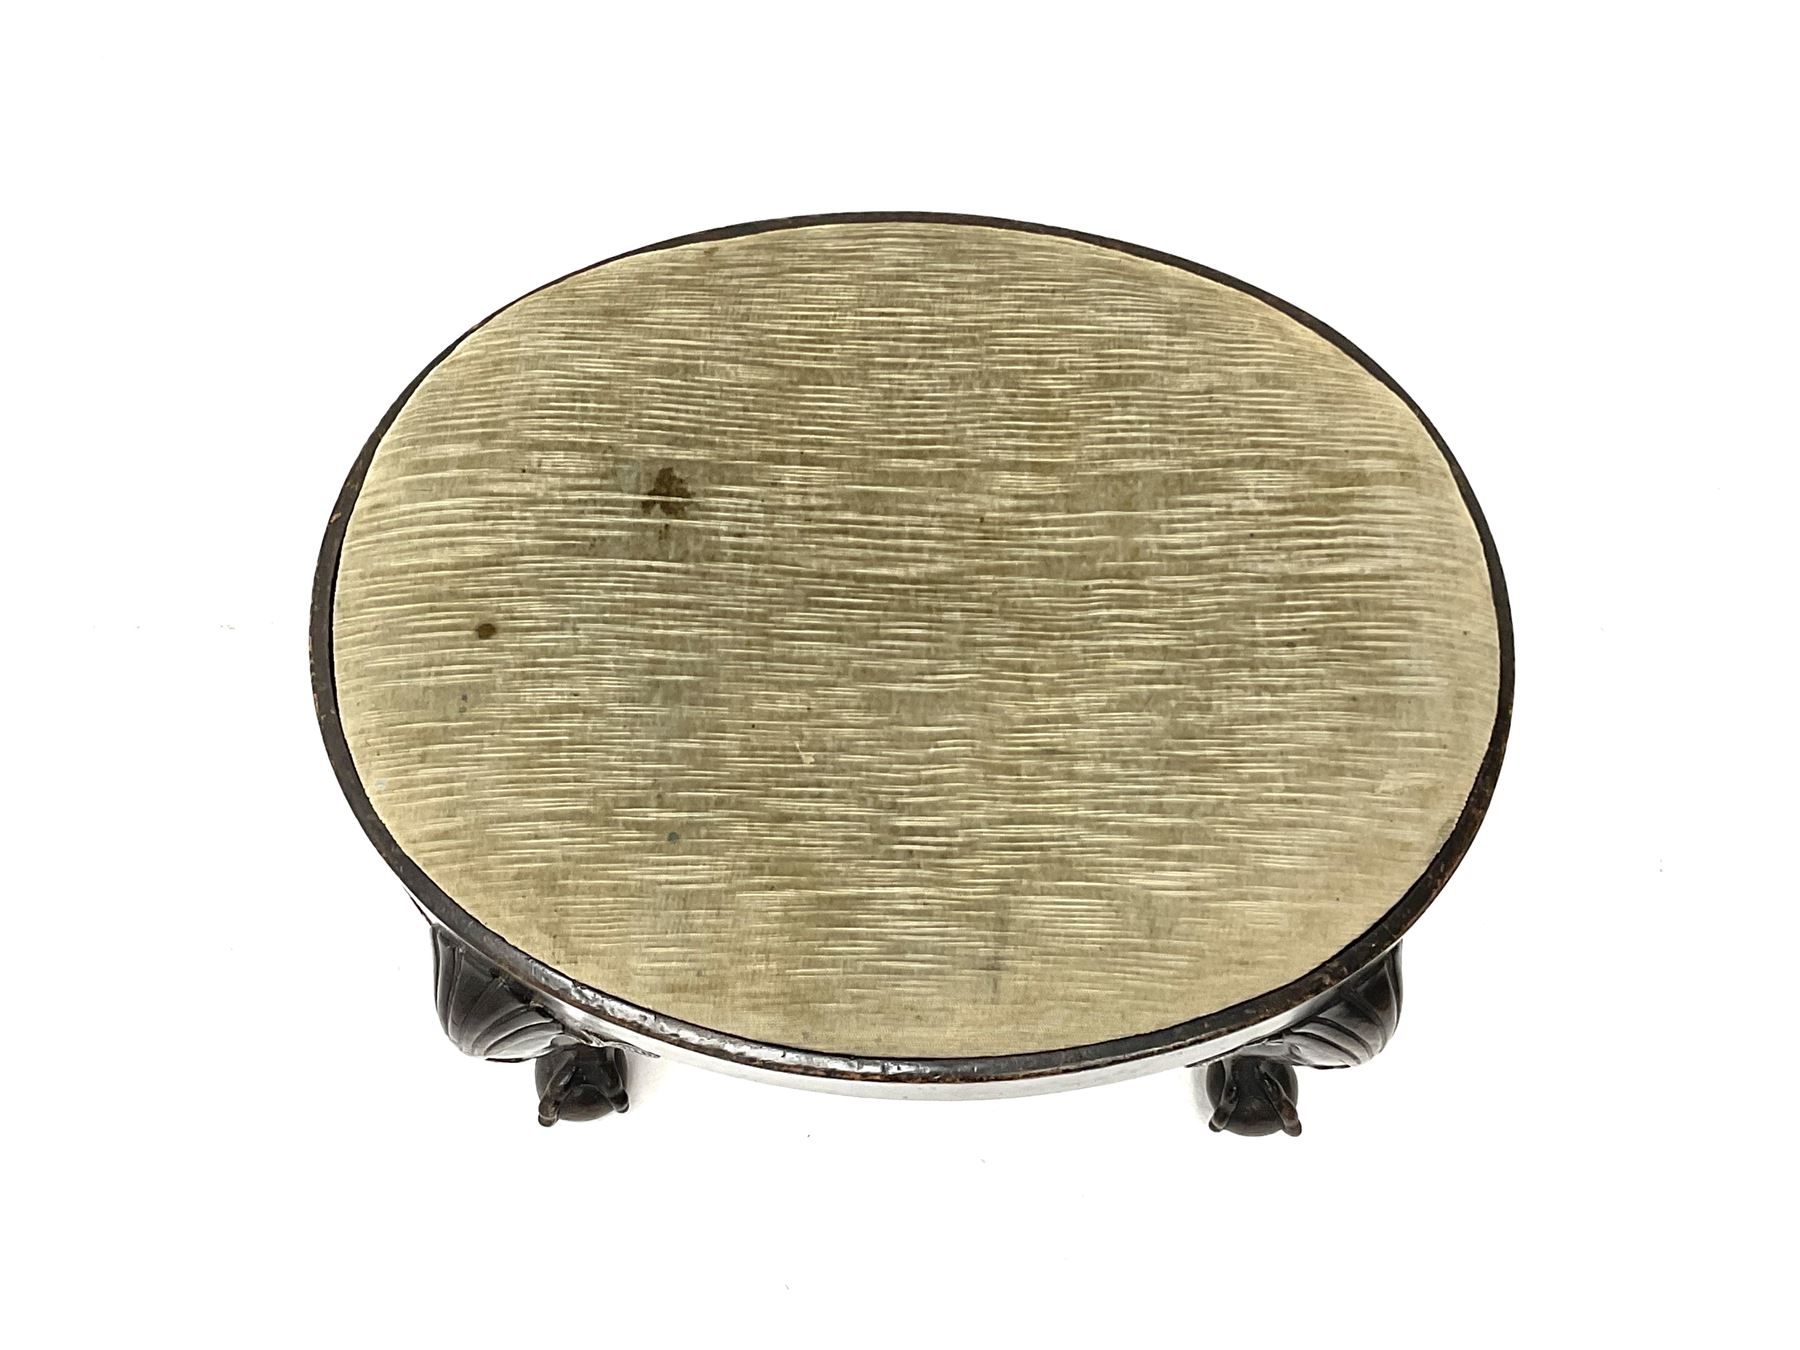 Georgian style walnut stool of oval form with plain frieze and upholstered drop-in seat on four cabr - Image 4 of 4